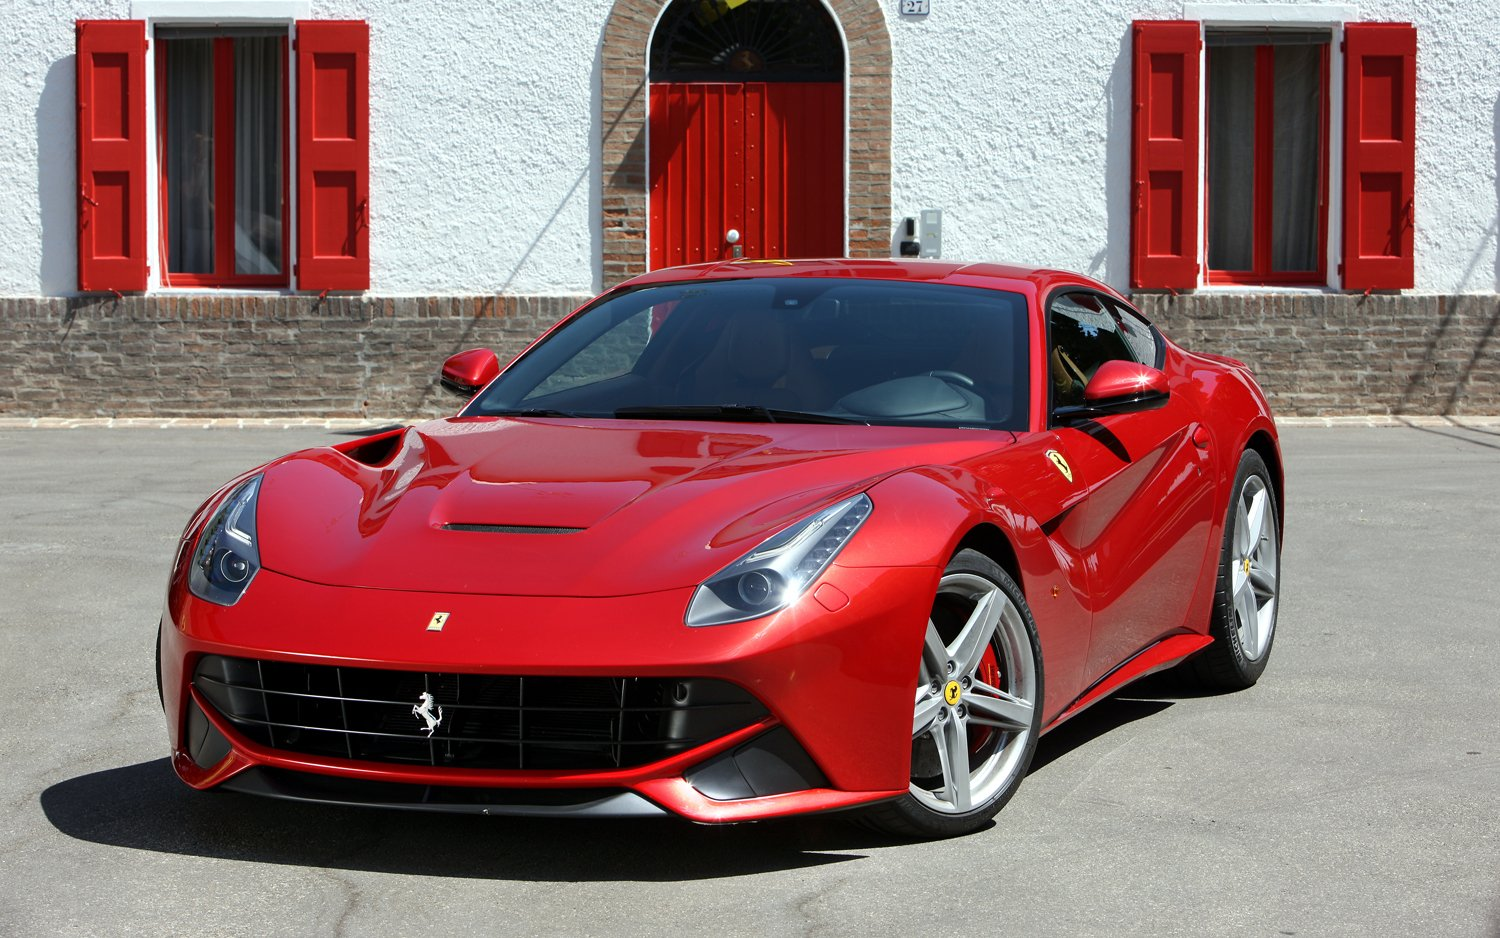 ferrari f12 berlinetta wallpaper #7